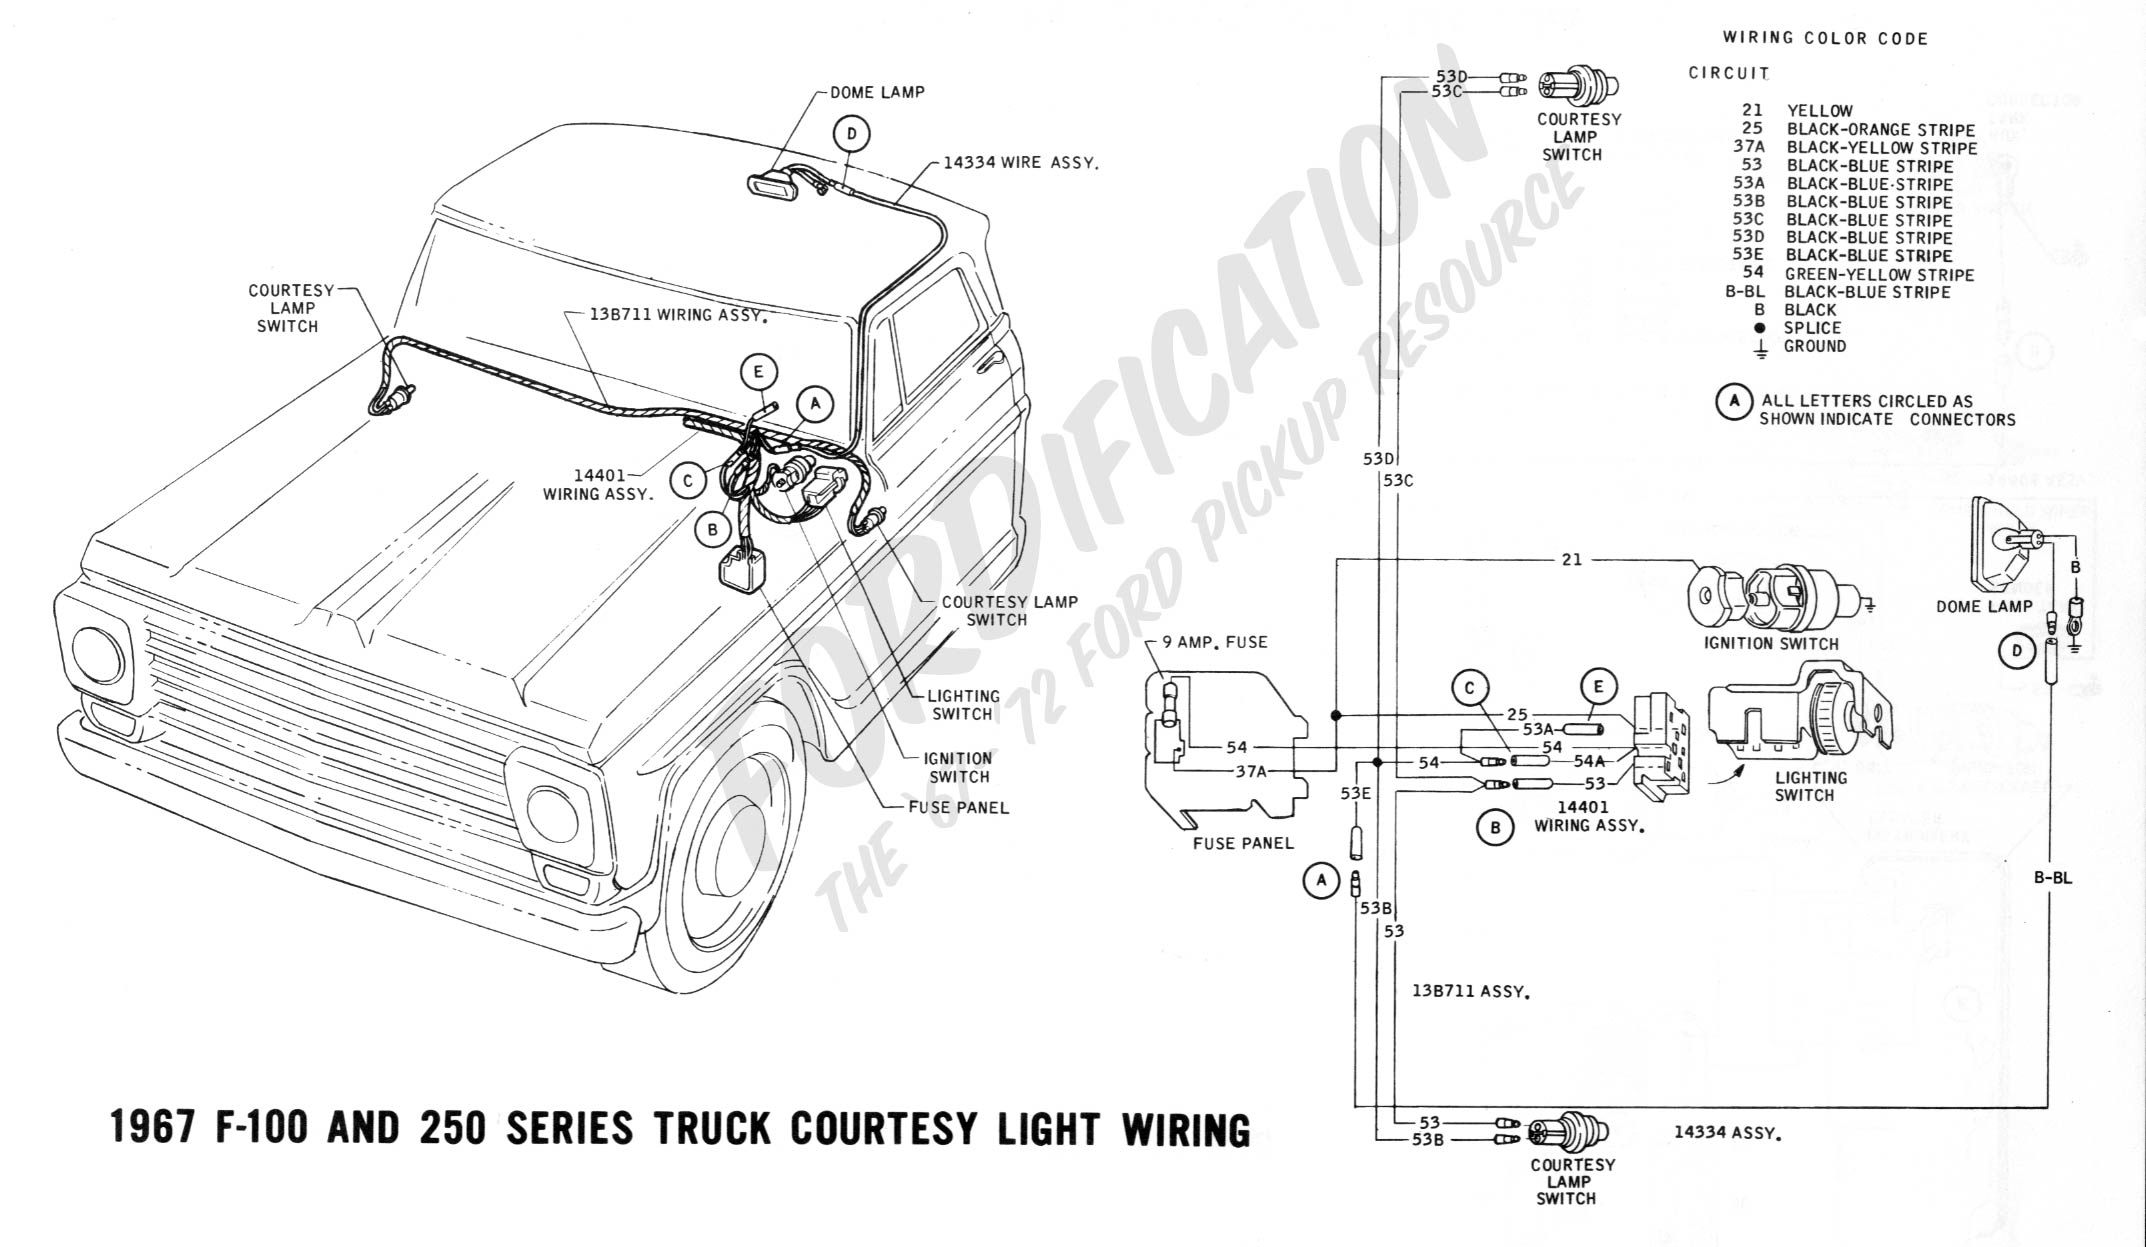 wiring 1967courtesylight ford truck technical drawings and schematics section h wiring ford truck wiring diagrams free at edmiracle.co